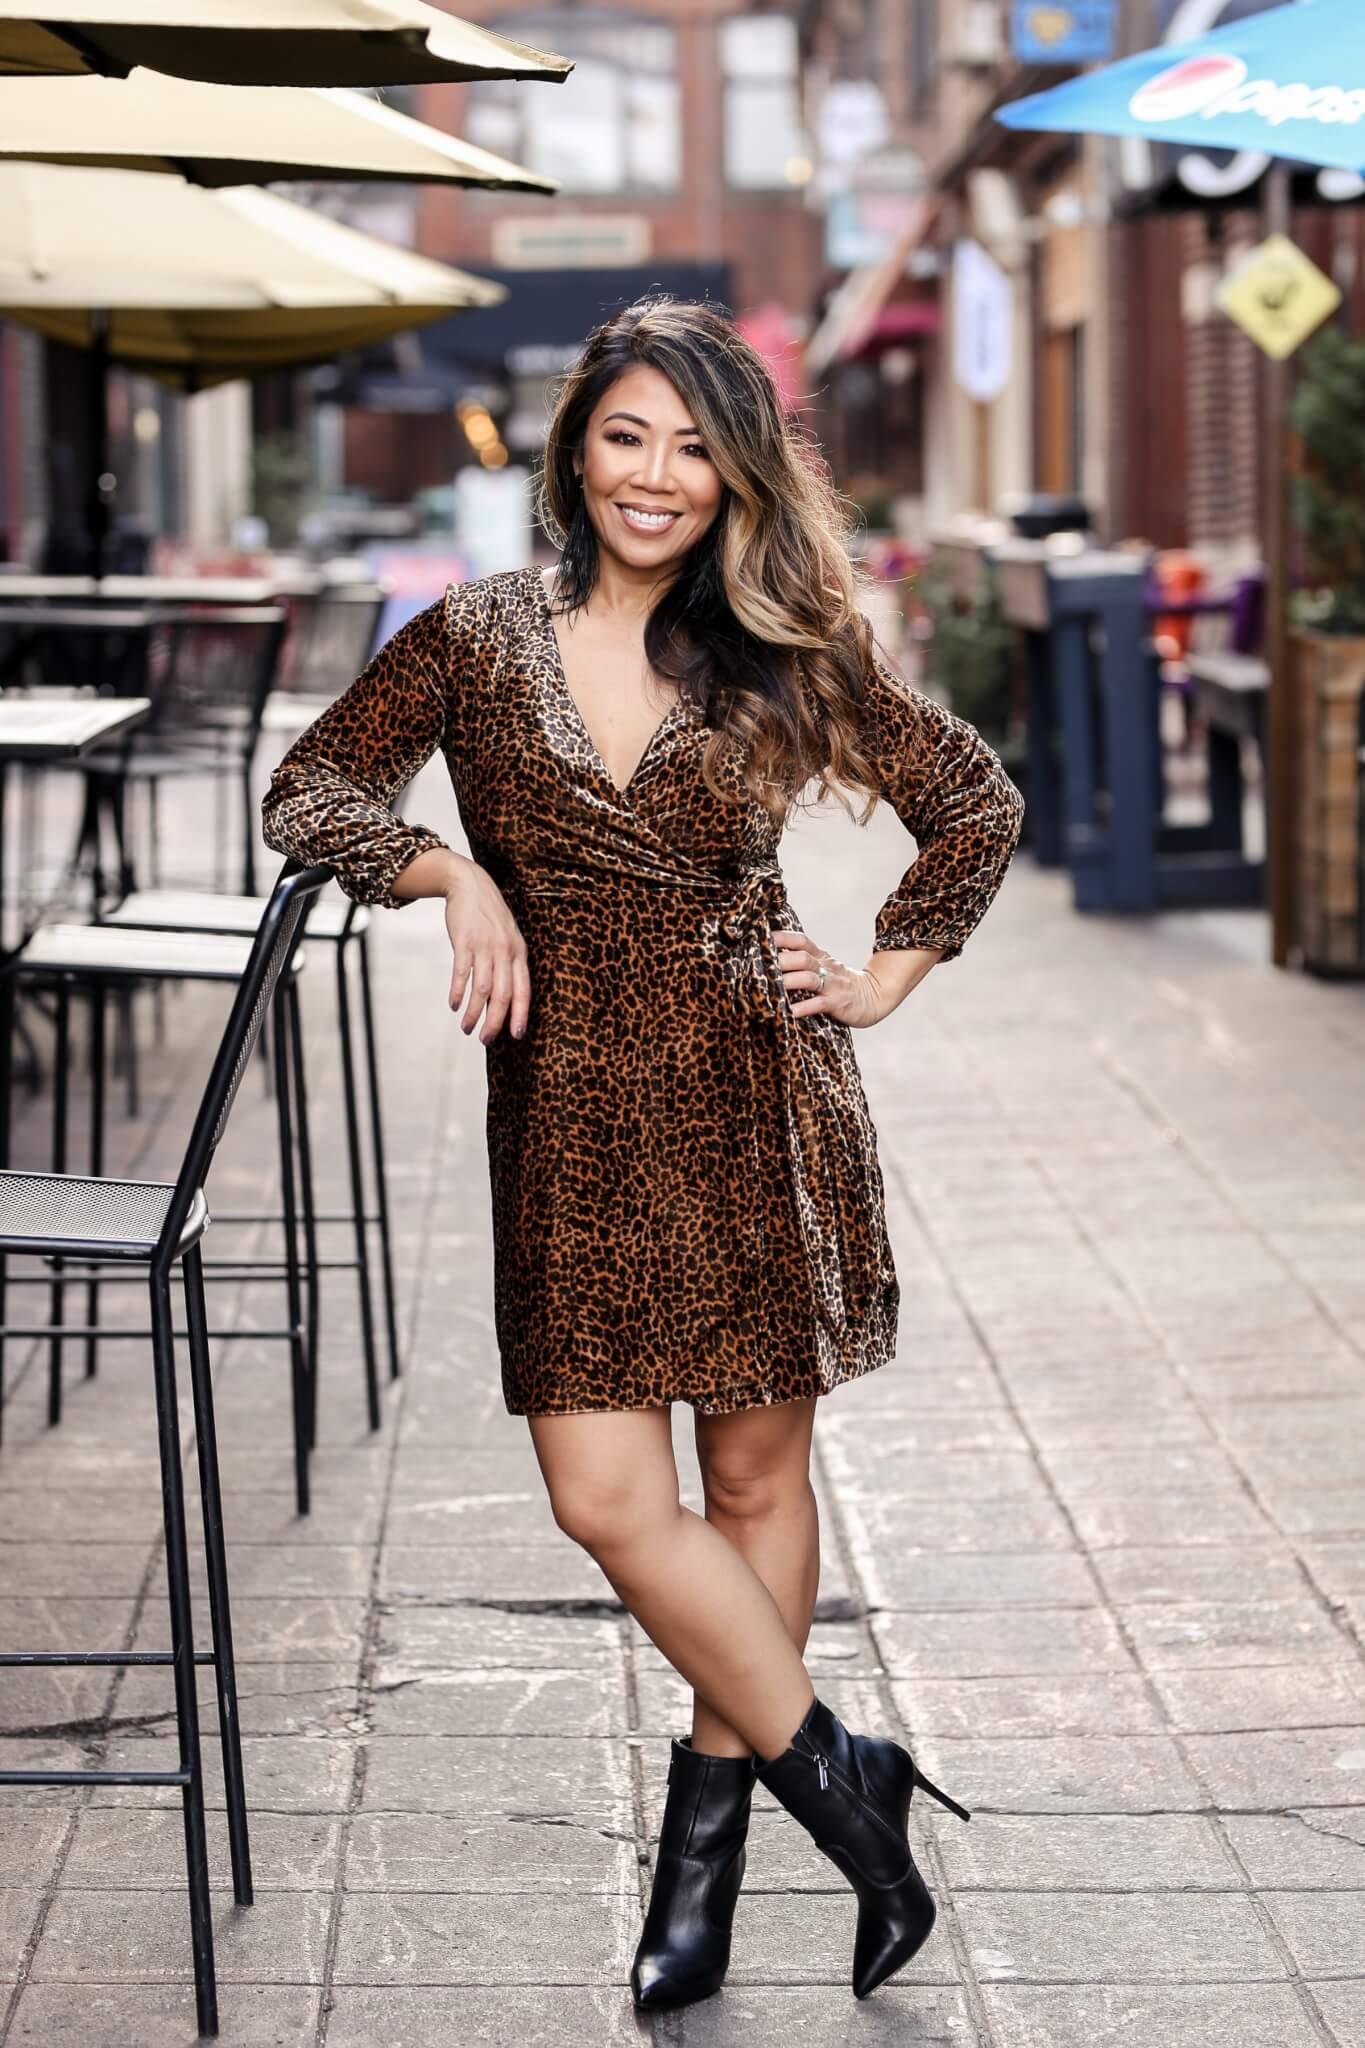 fall lookbook, fall fashion, fall trends, fall style, velvet dress, animal print dress, leopard dress